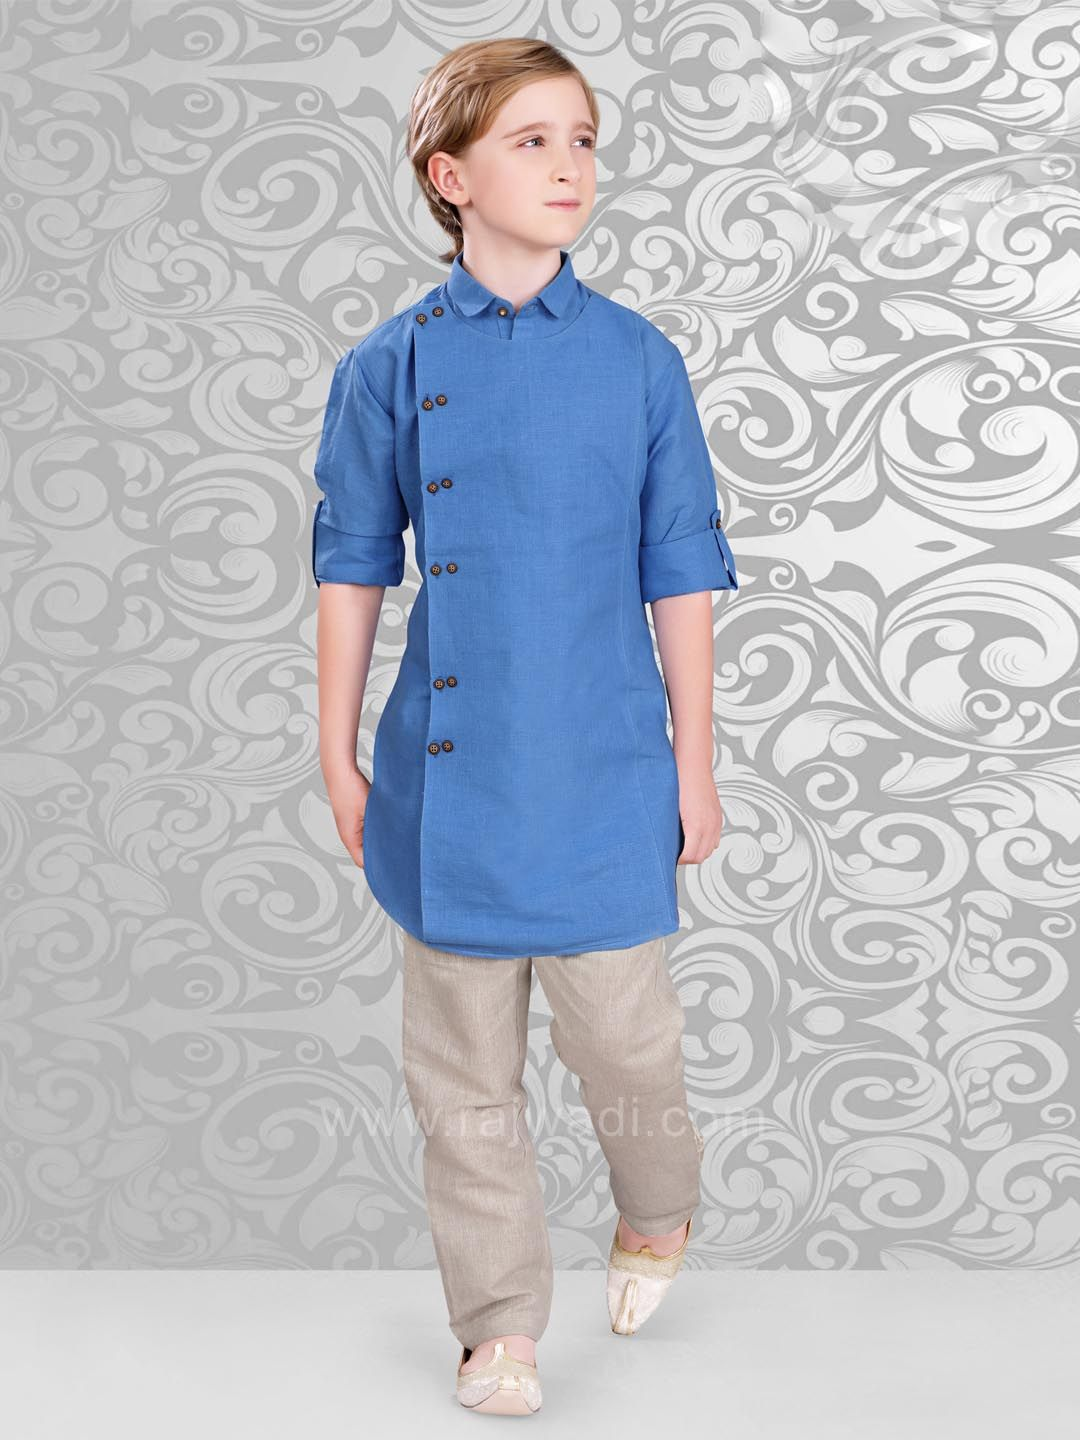 13715d13 Linen Fabric Kurta Pajama in Royal Blue Color #rajwadi #kidswear #boys  #ethnic #traditional #modern #trendy #fashionable #kidsfashion